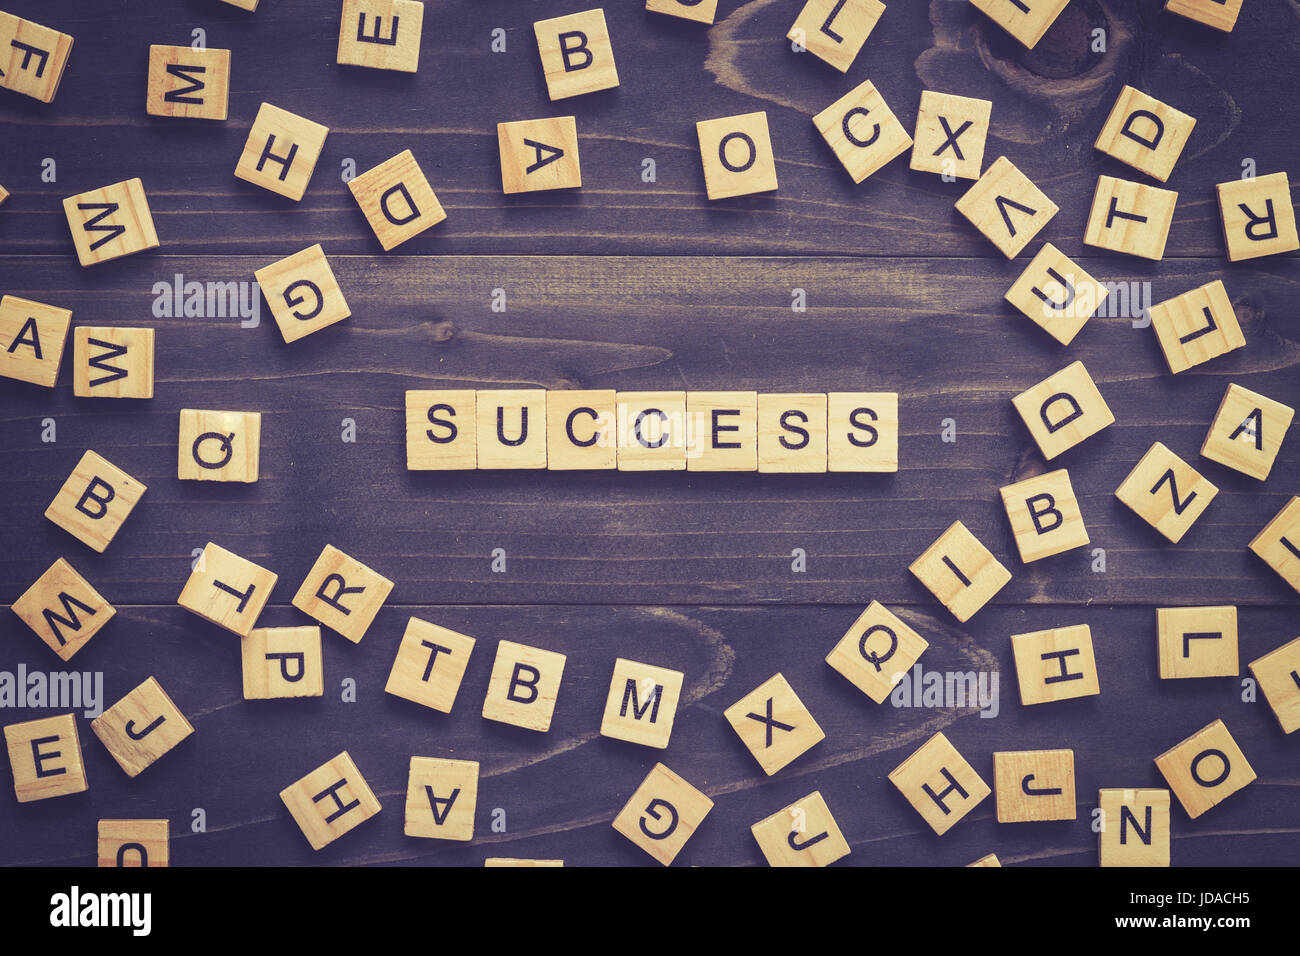 Success word on wood table for business concept. - Stock Image